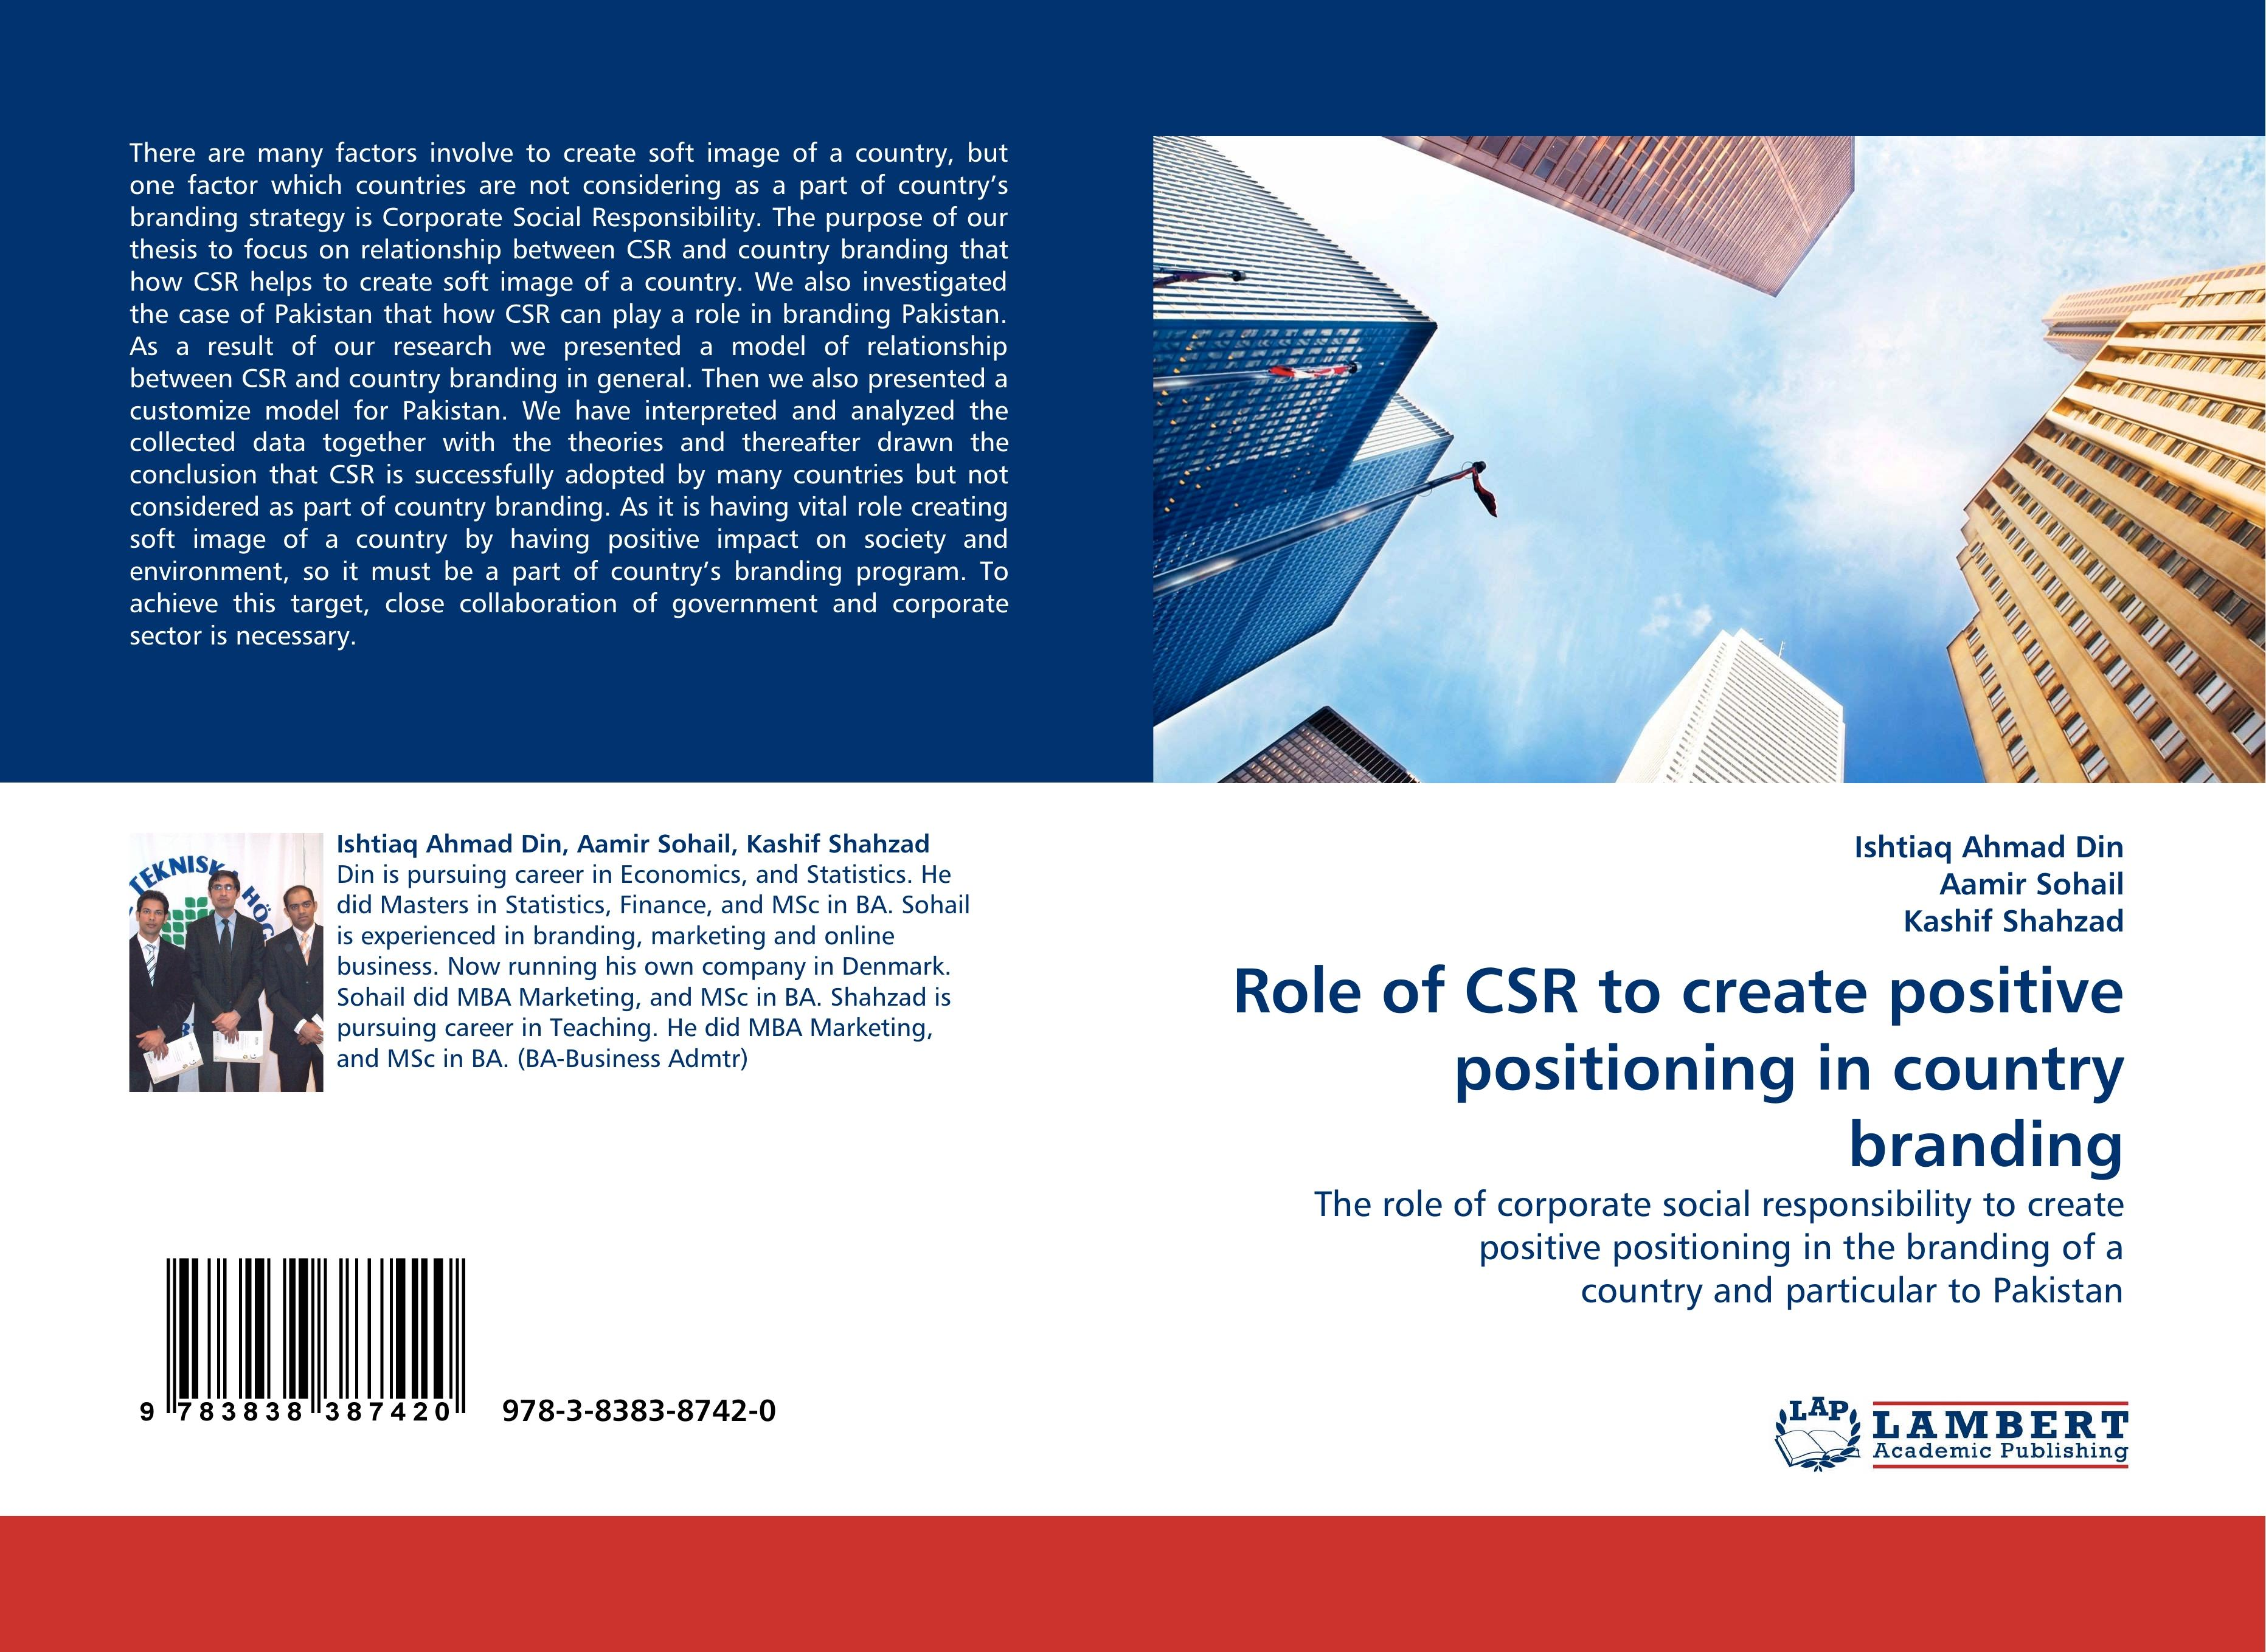 Role of CSR to create positive positioning in country branding  The role of corporate social responsibility to create positive positioning in the branding of a country and particular to Pakistan - Din, Ishtiaq Ahmad